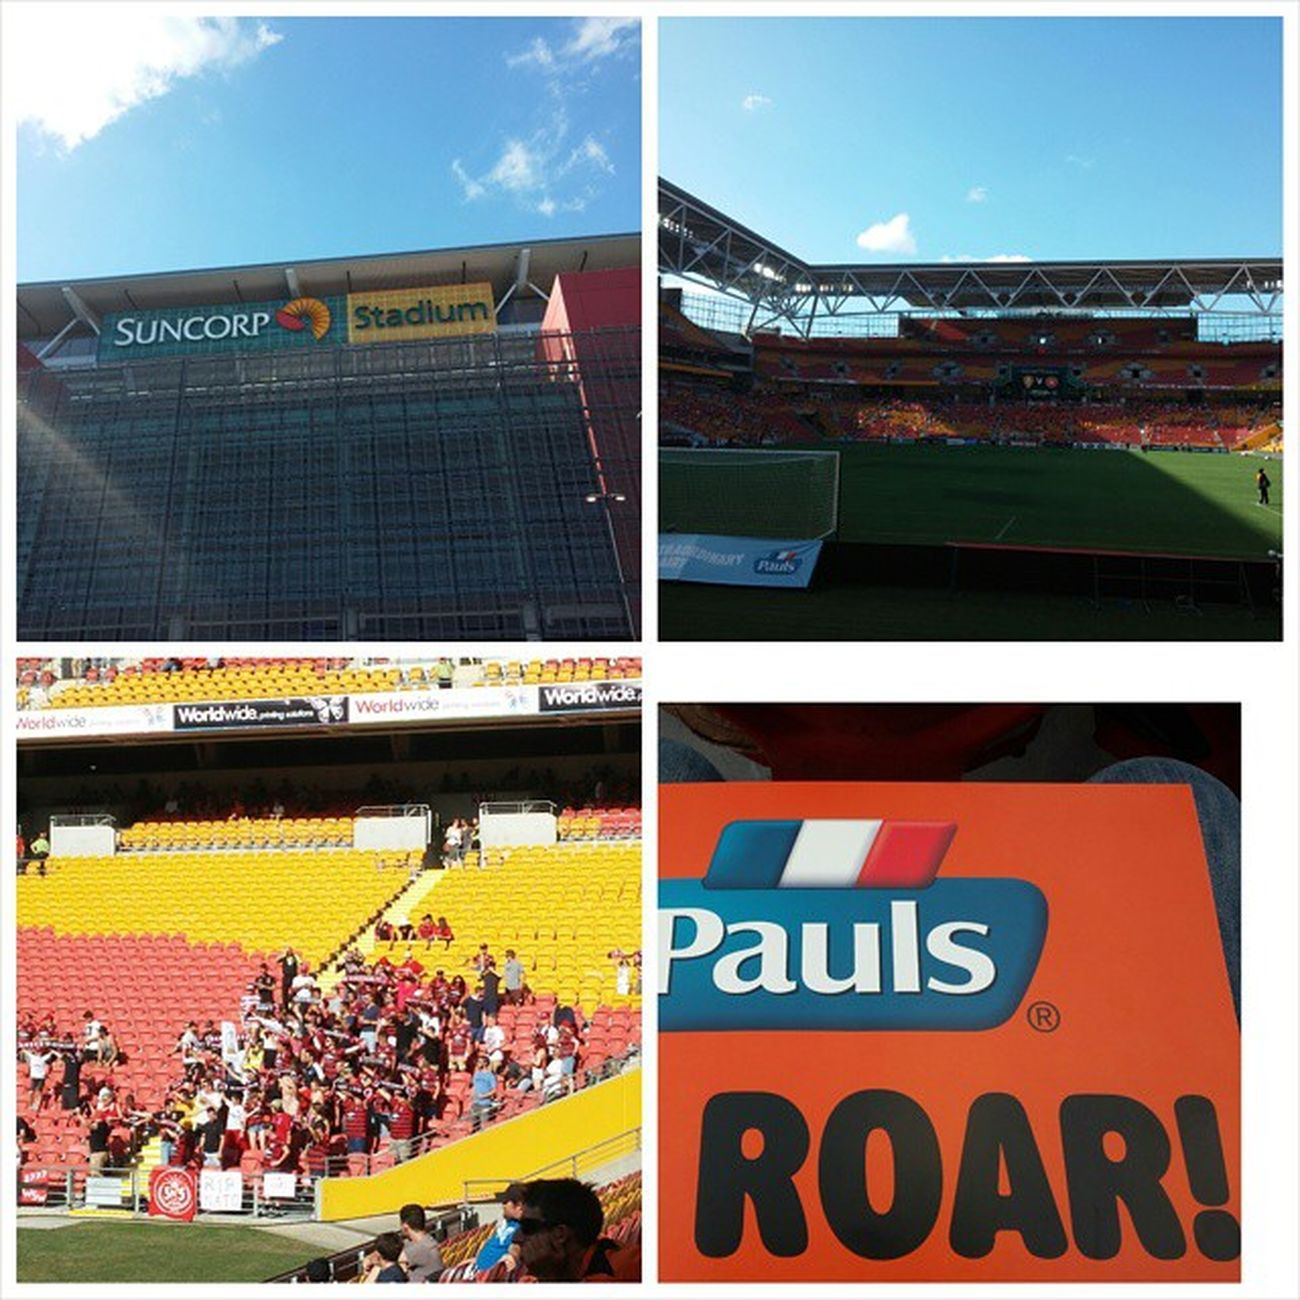 BrisbaneRoar One NOthIng WesternSydneyWanderers Suncorp Stadium